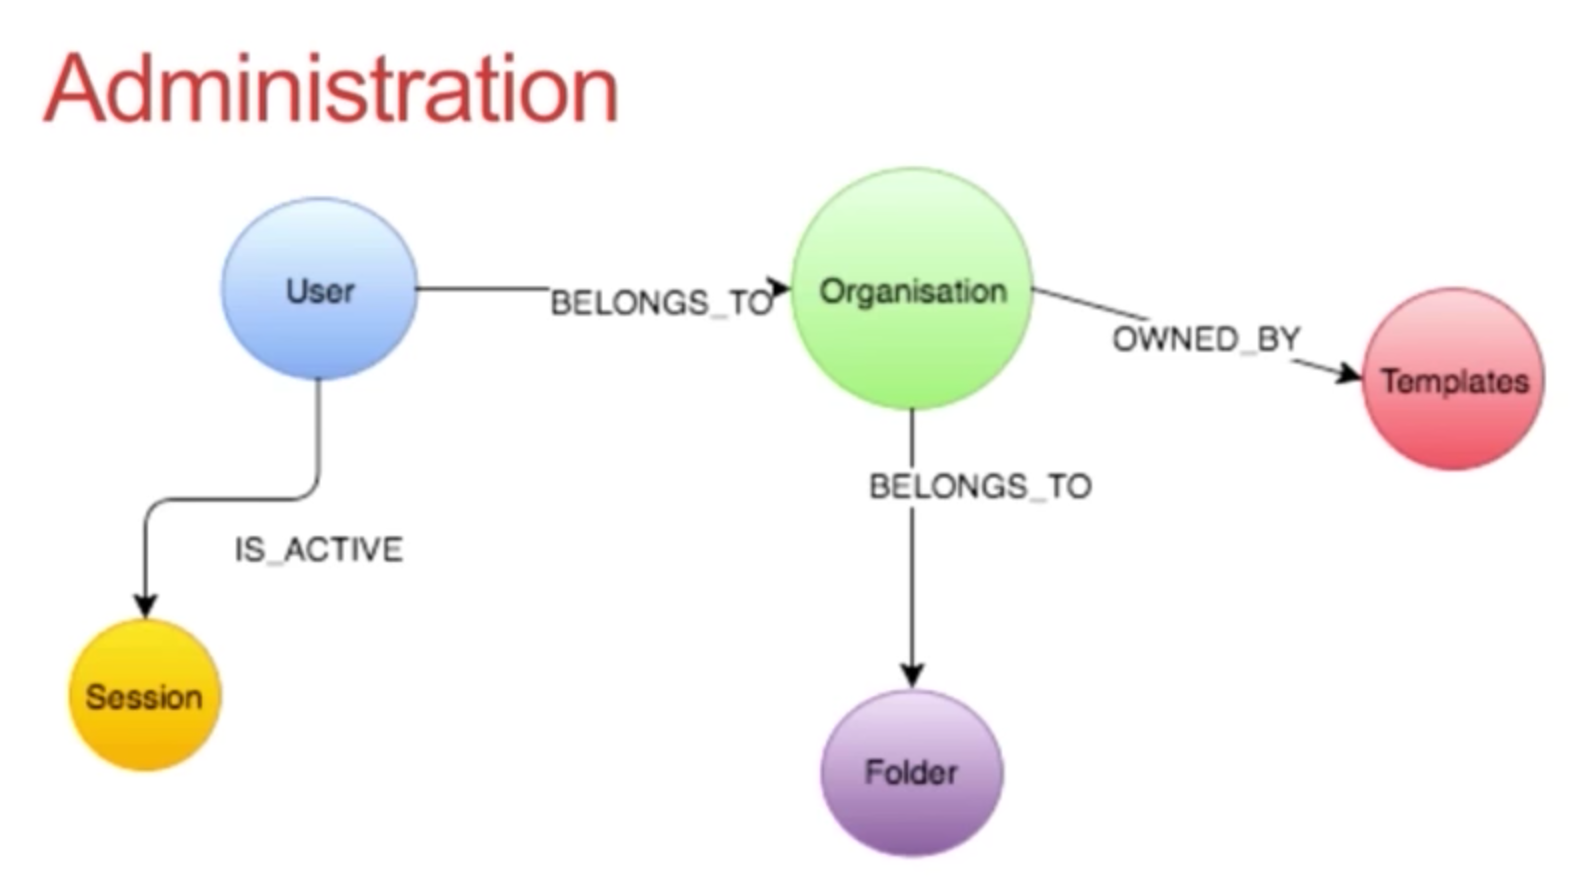 The administration data model tree at Scribestar